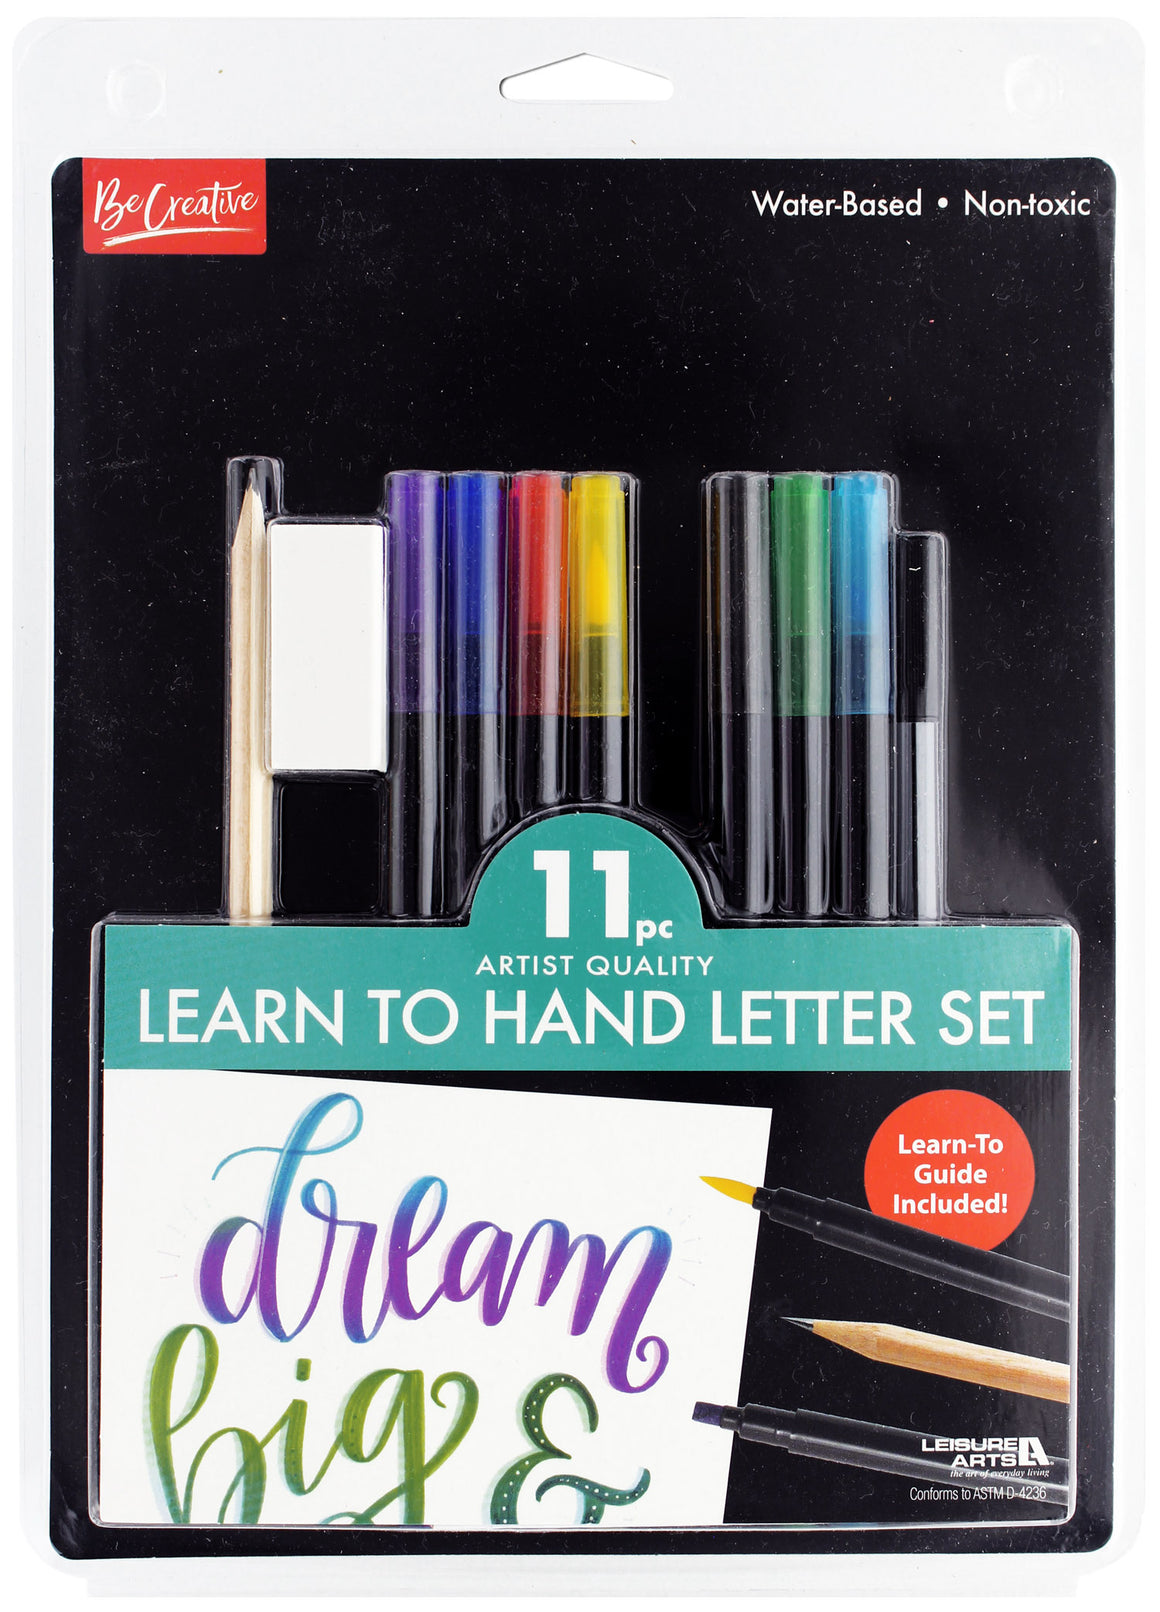 Learn to Hand Letter - Hand Lettering Set